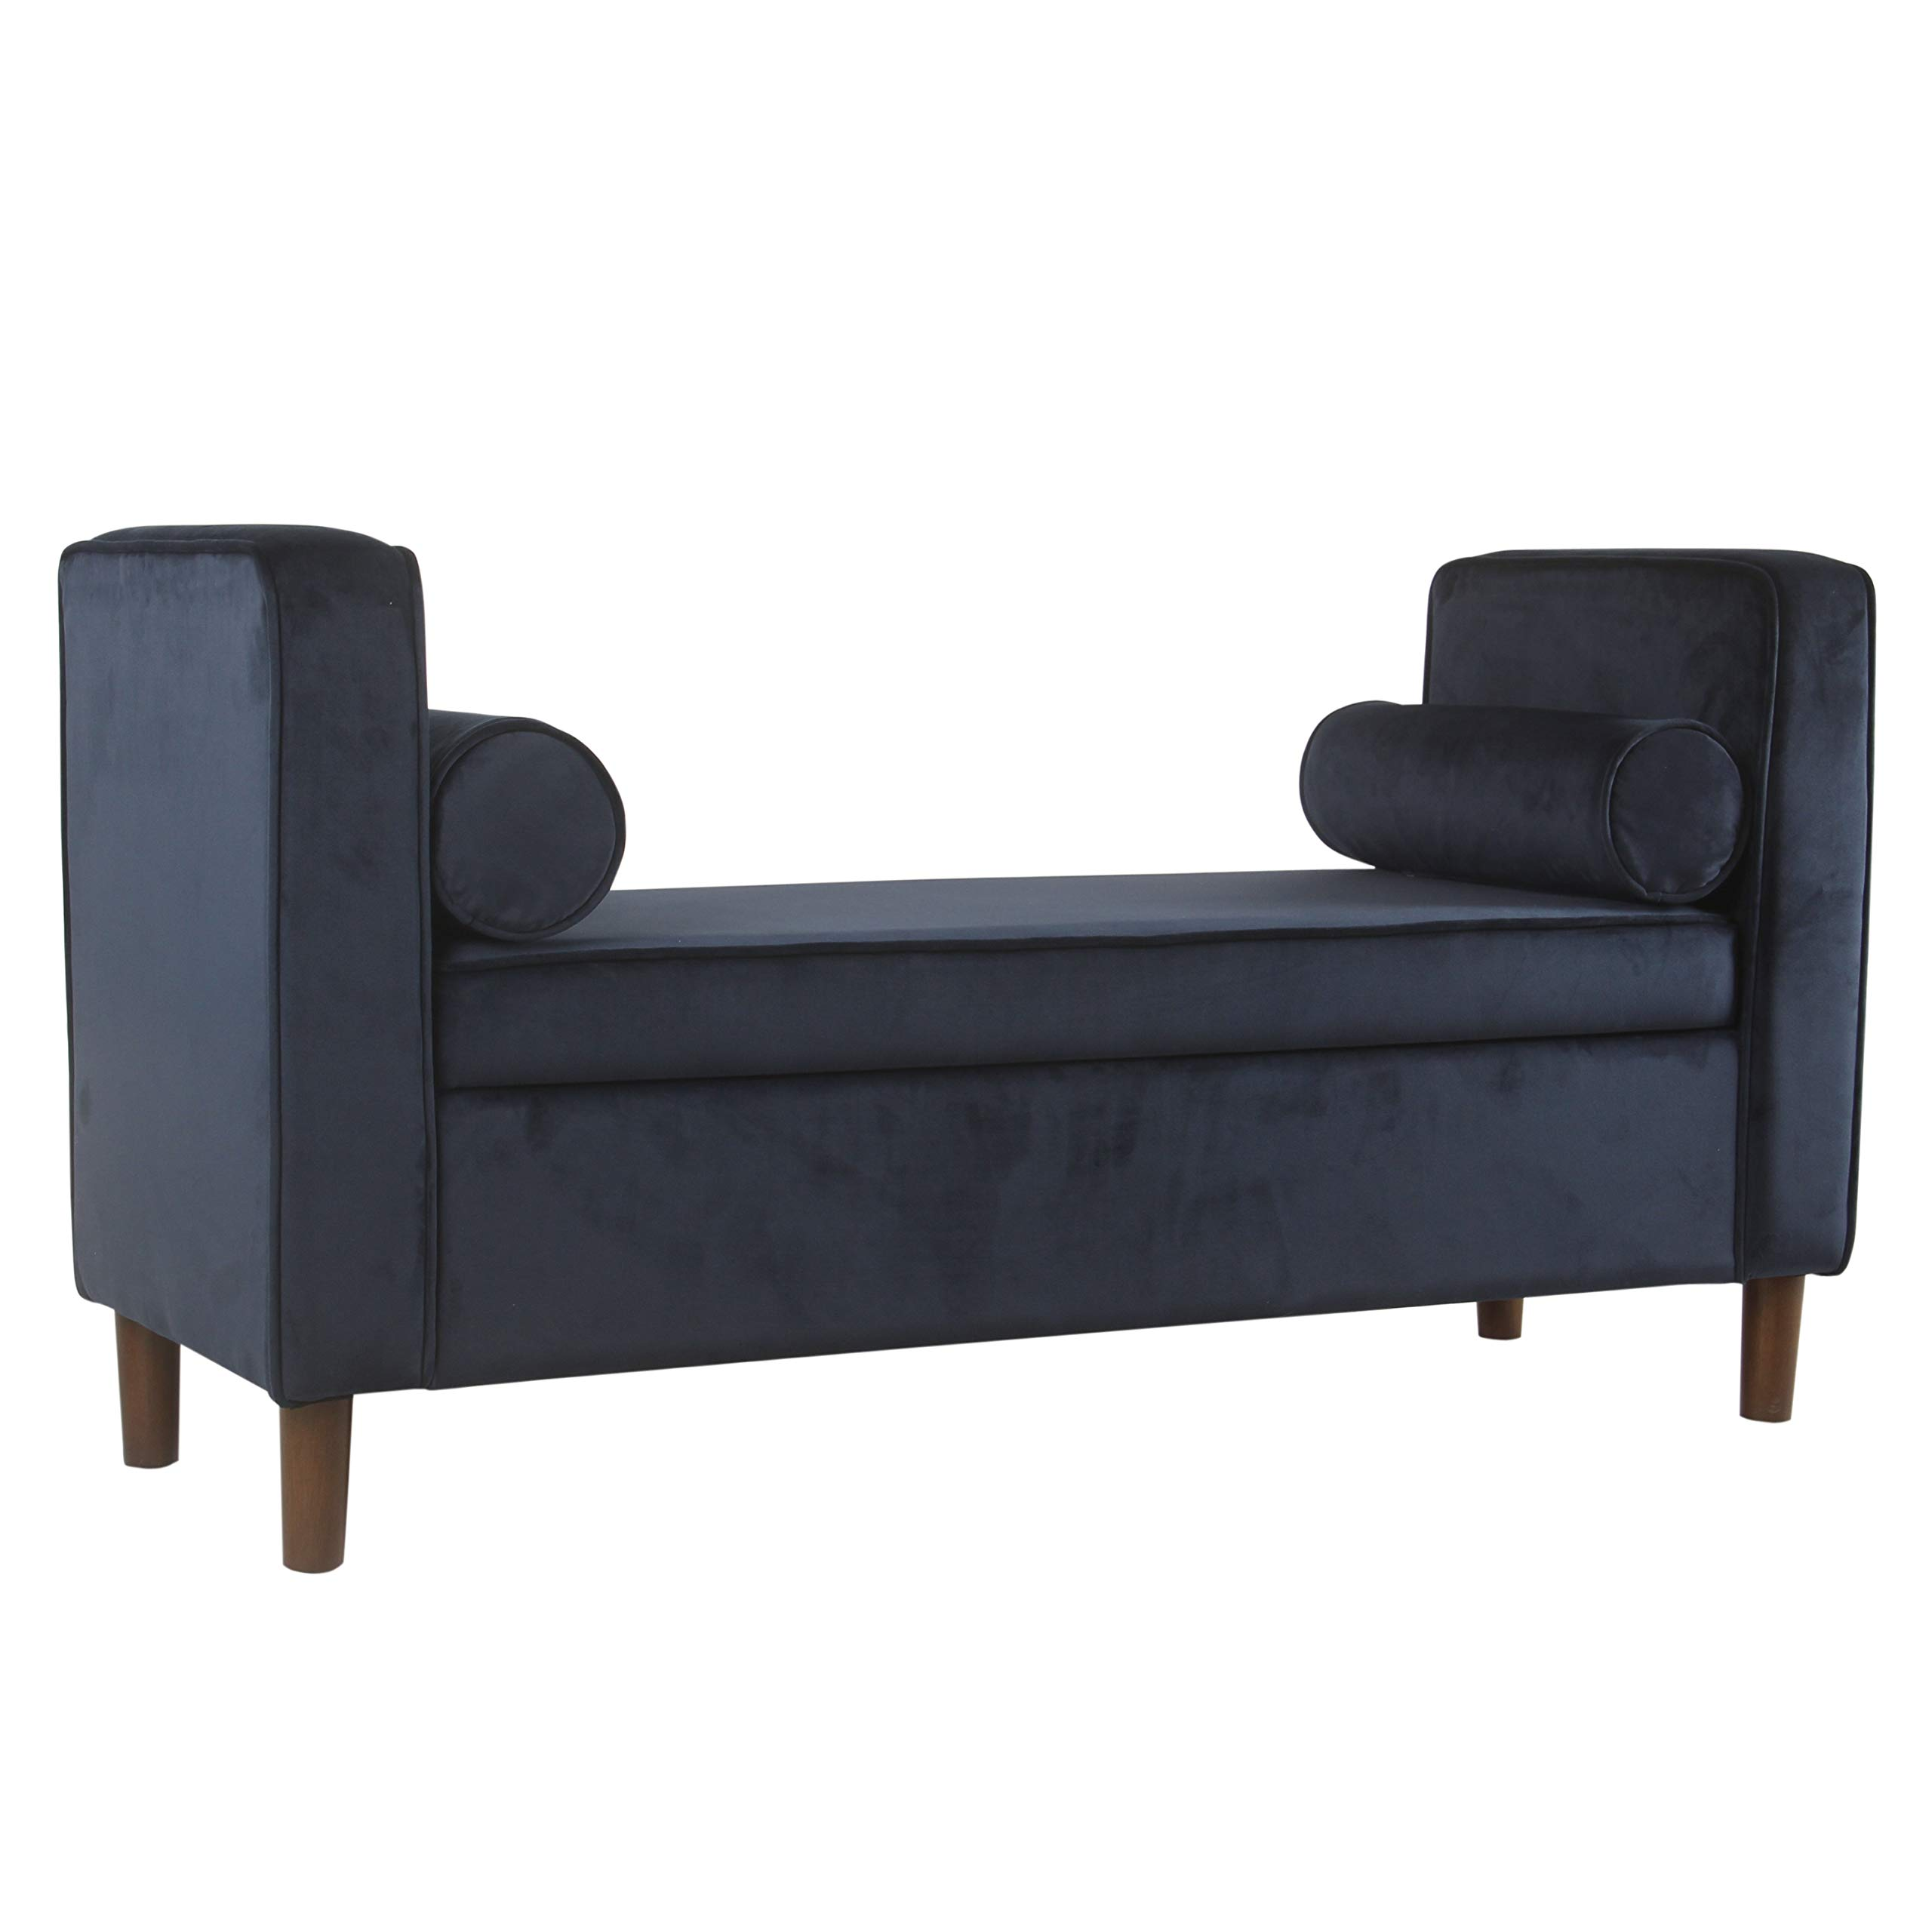 HomePop Rimo Upholstered Armed Storage Bench with Pillows, Dark Navy